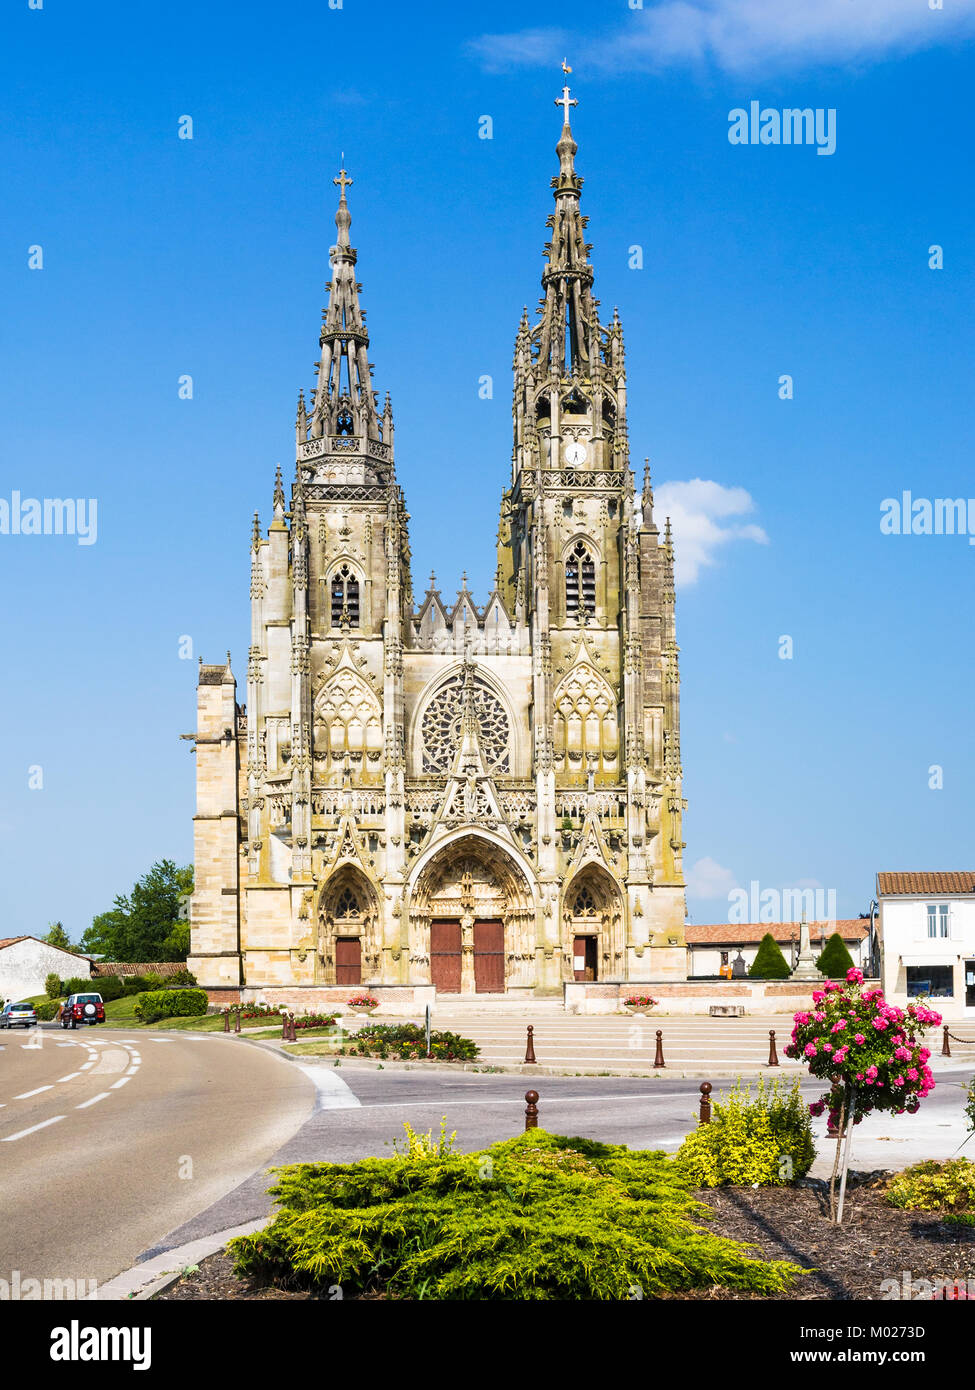 Travel to France - front view of Basilique Notre-Dame de l'Epine (Basilica of Our Lady of the Thorn) in village - Stock Image